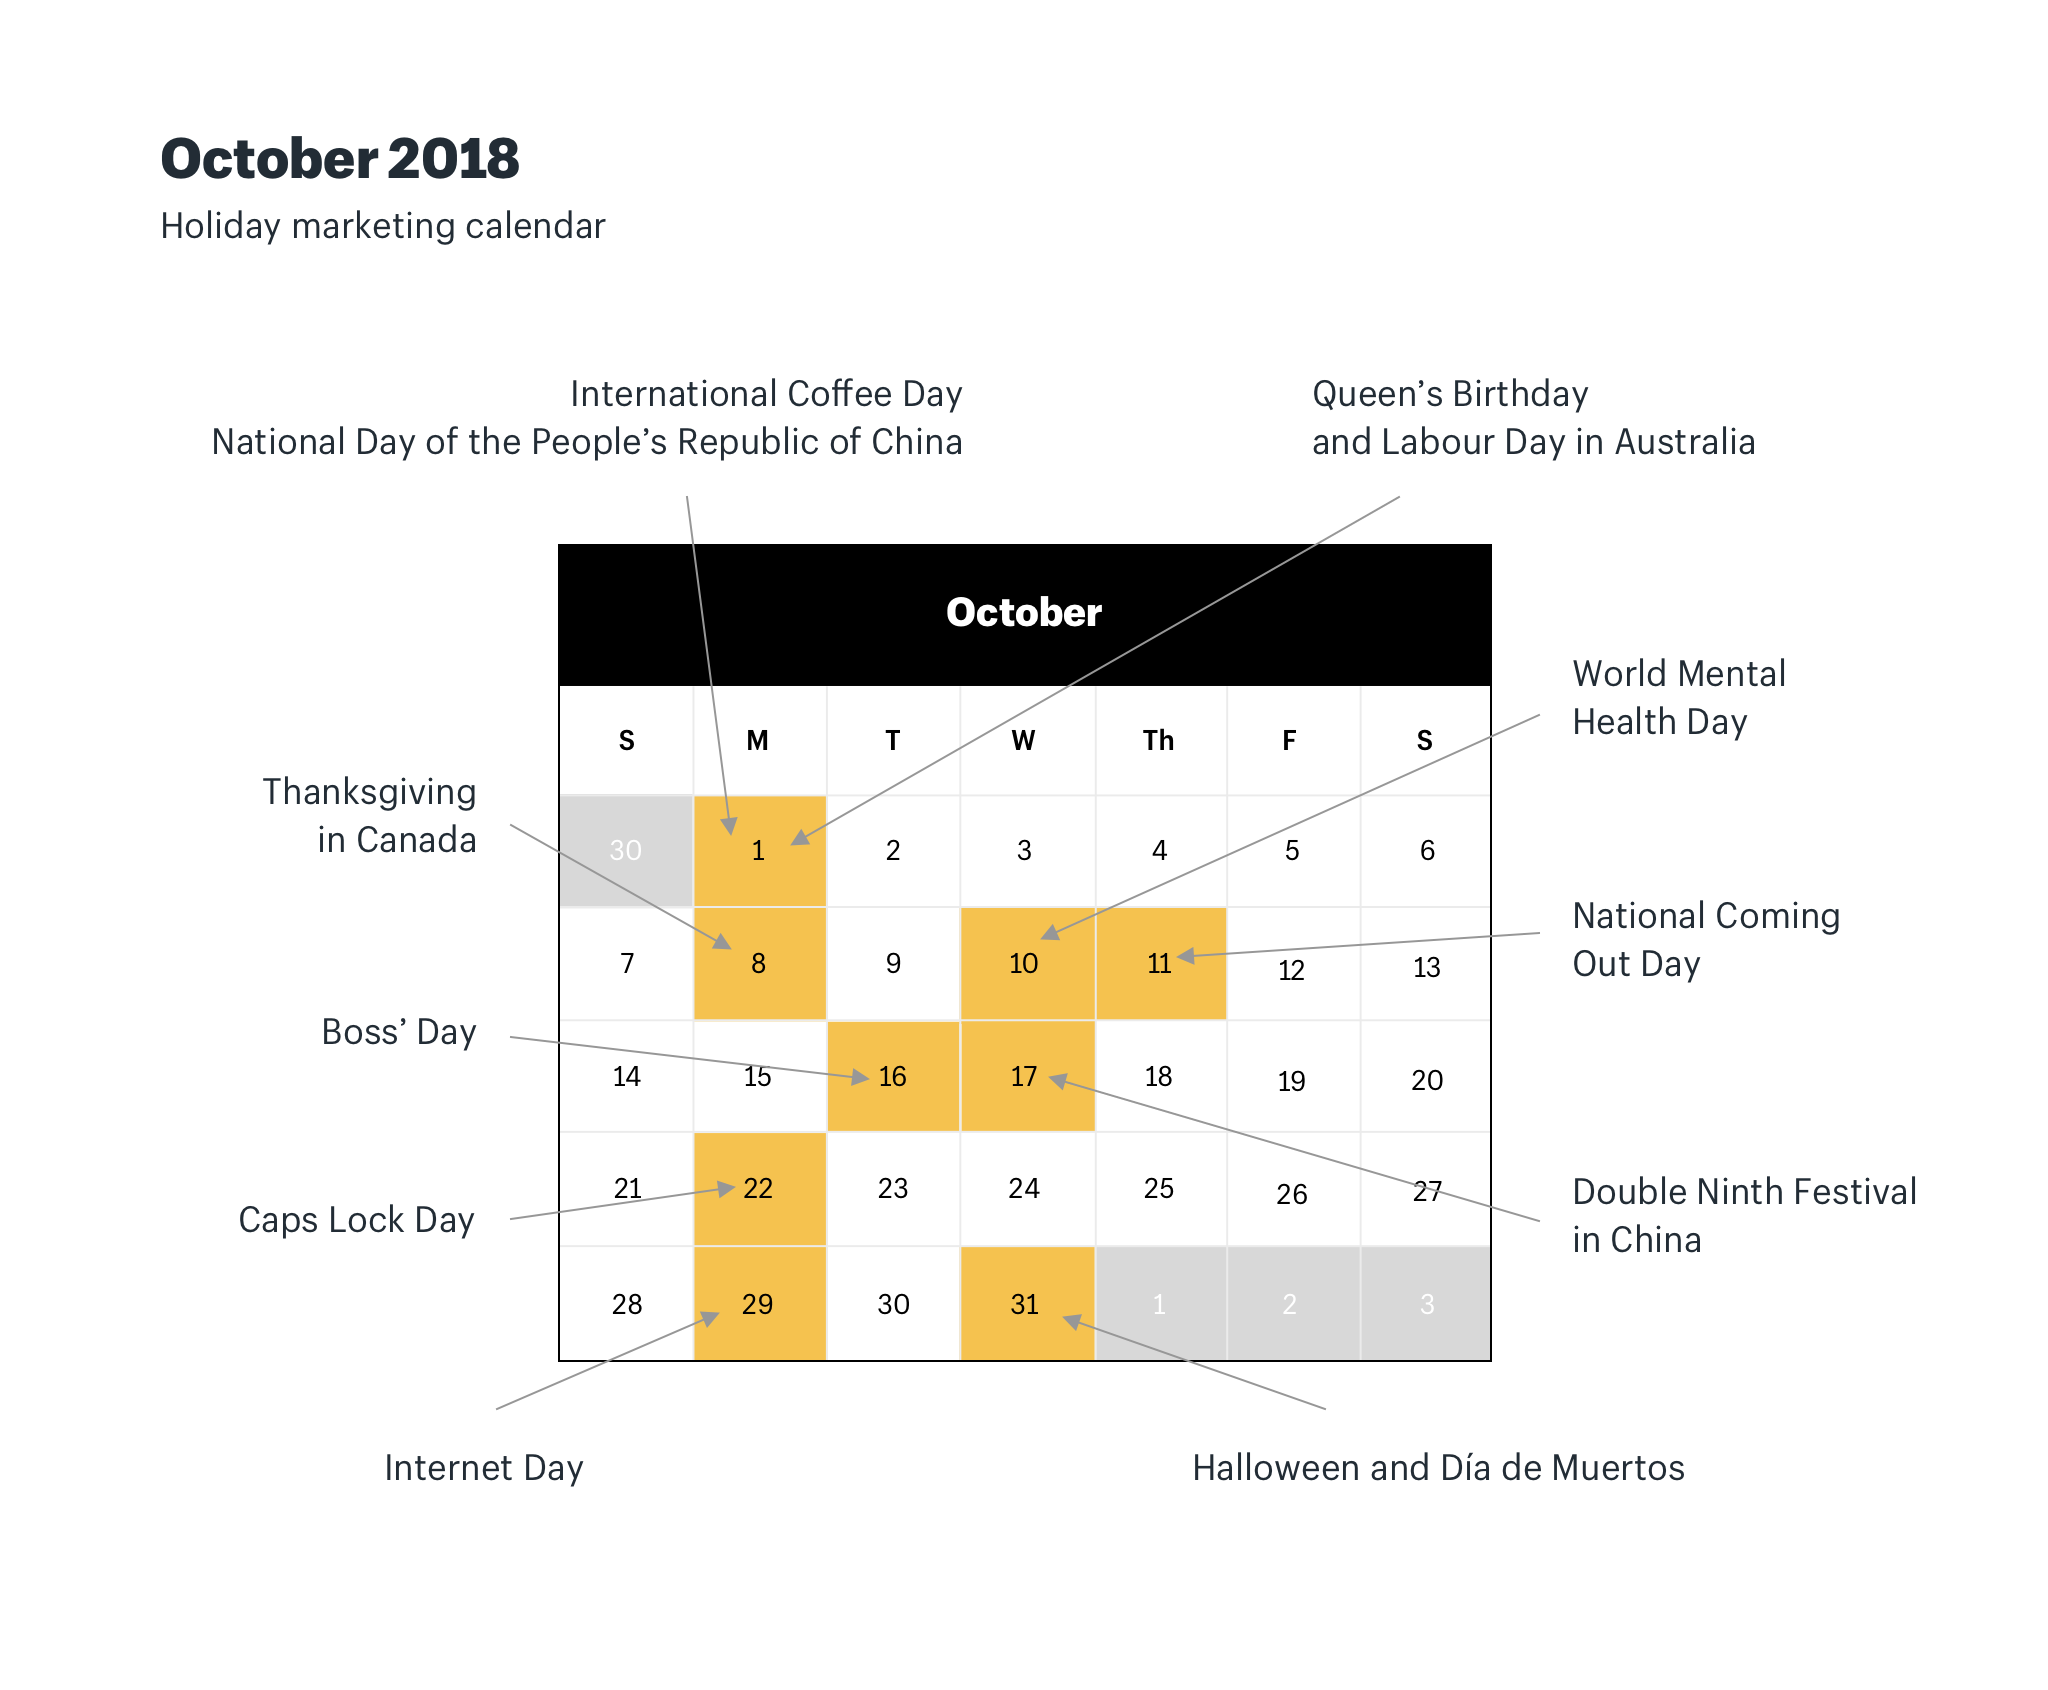 October holiday marketing calendar 2018